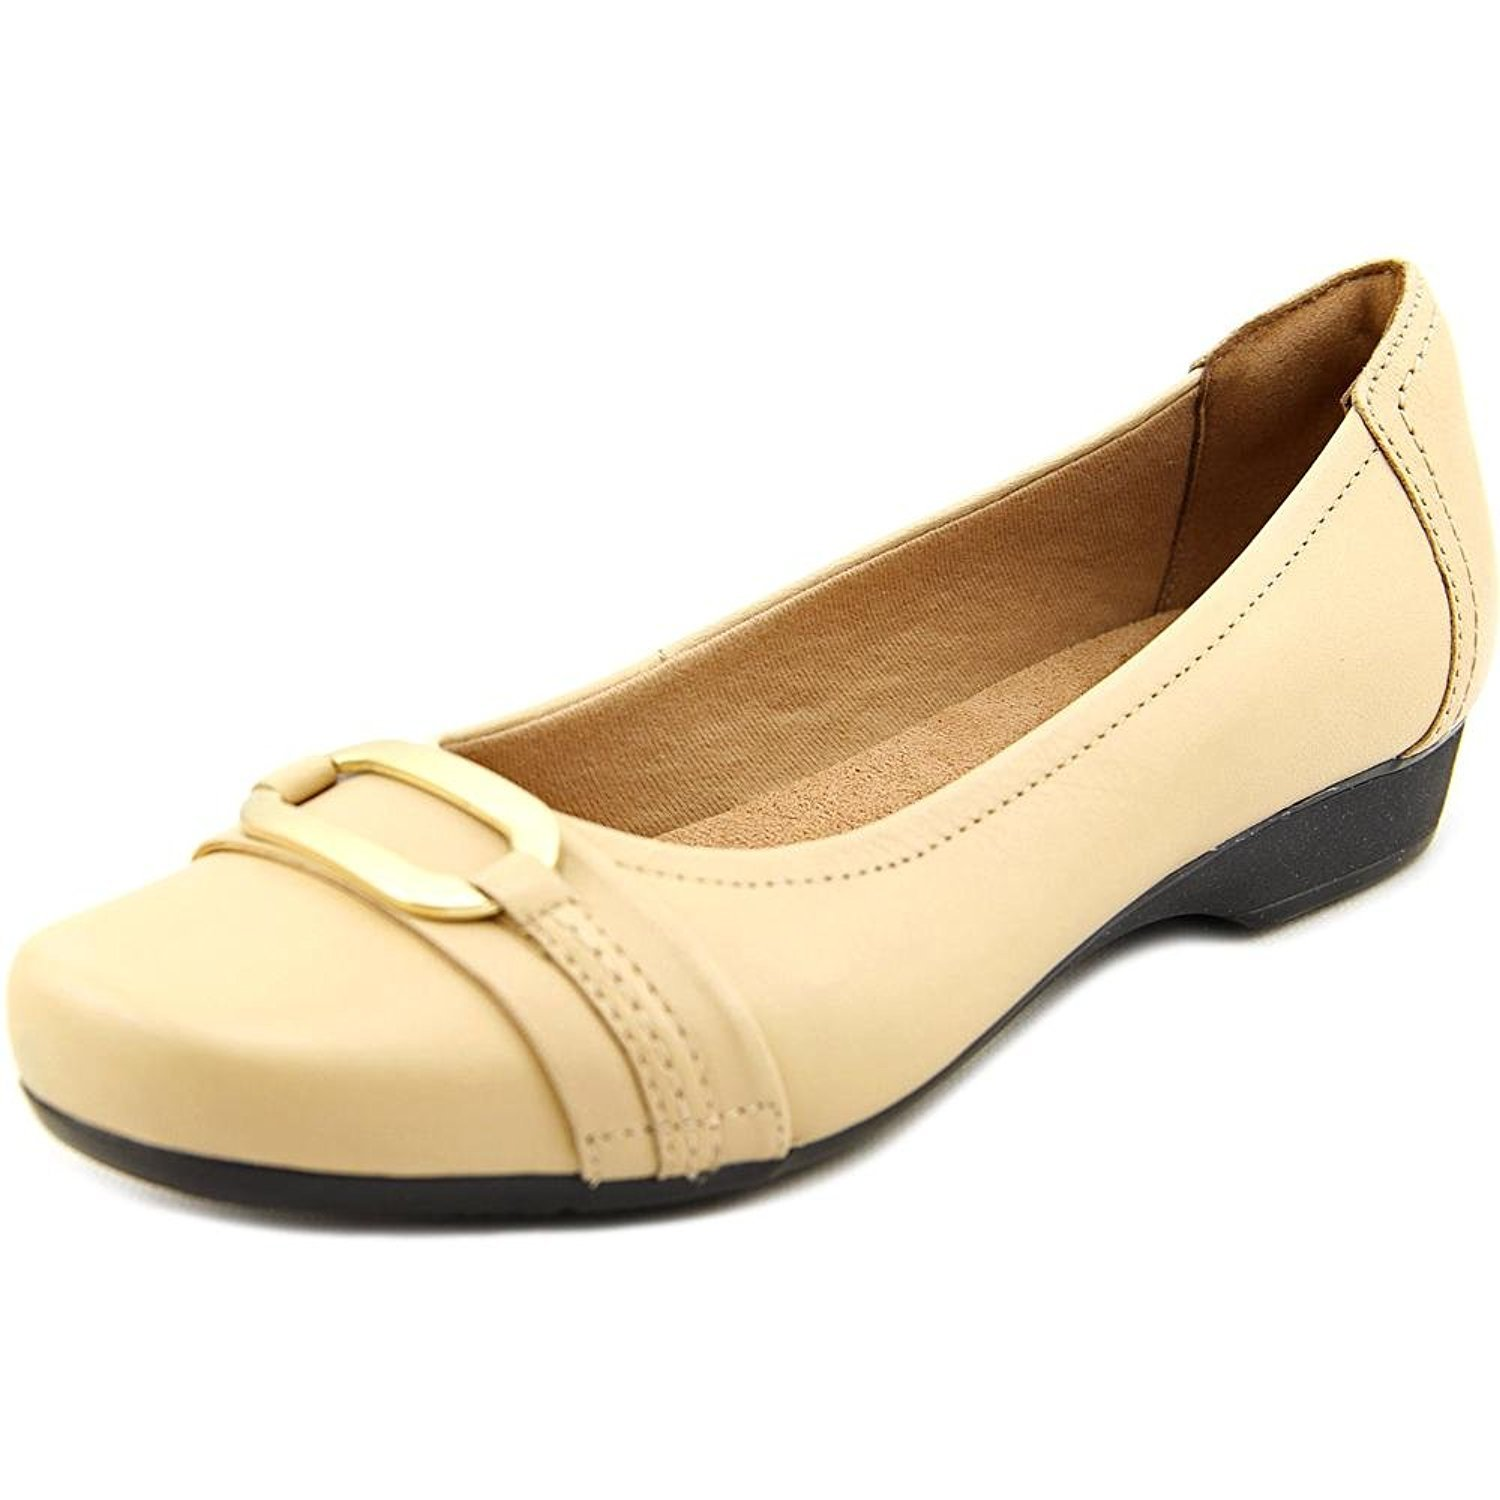 Clarks Blanche Rosa Women Leather Shoes US 9.5 Nude Flats: Amazon.ca: Shoes  & Handbags